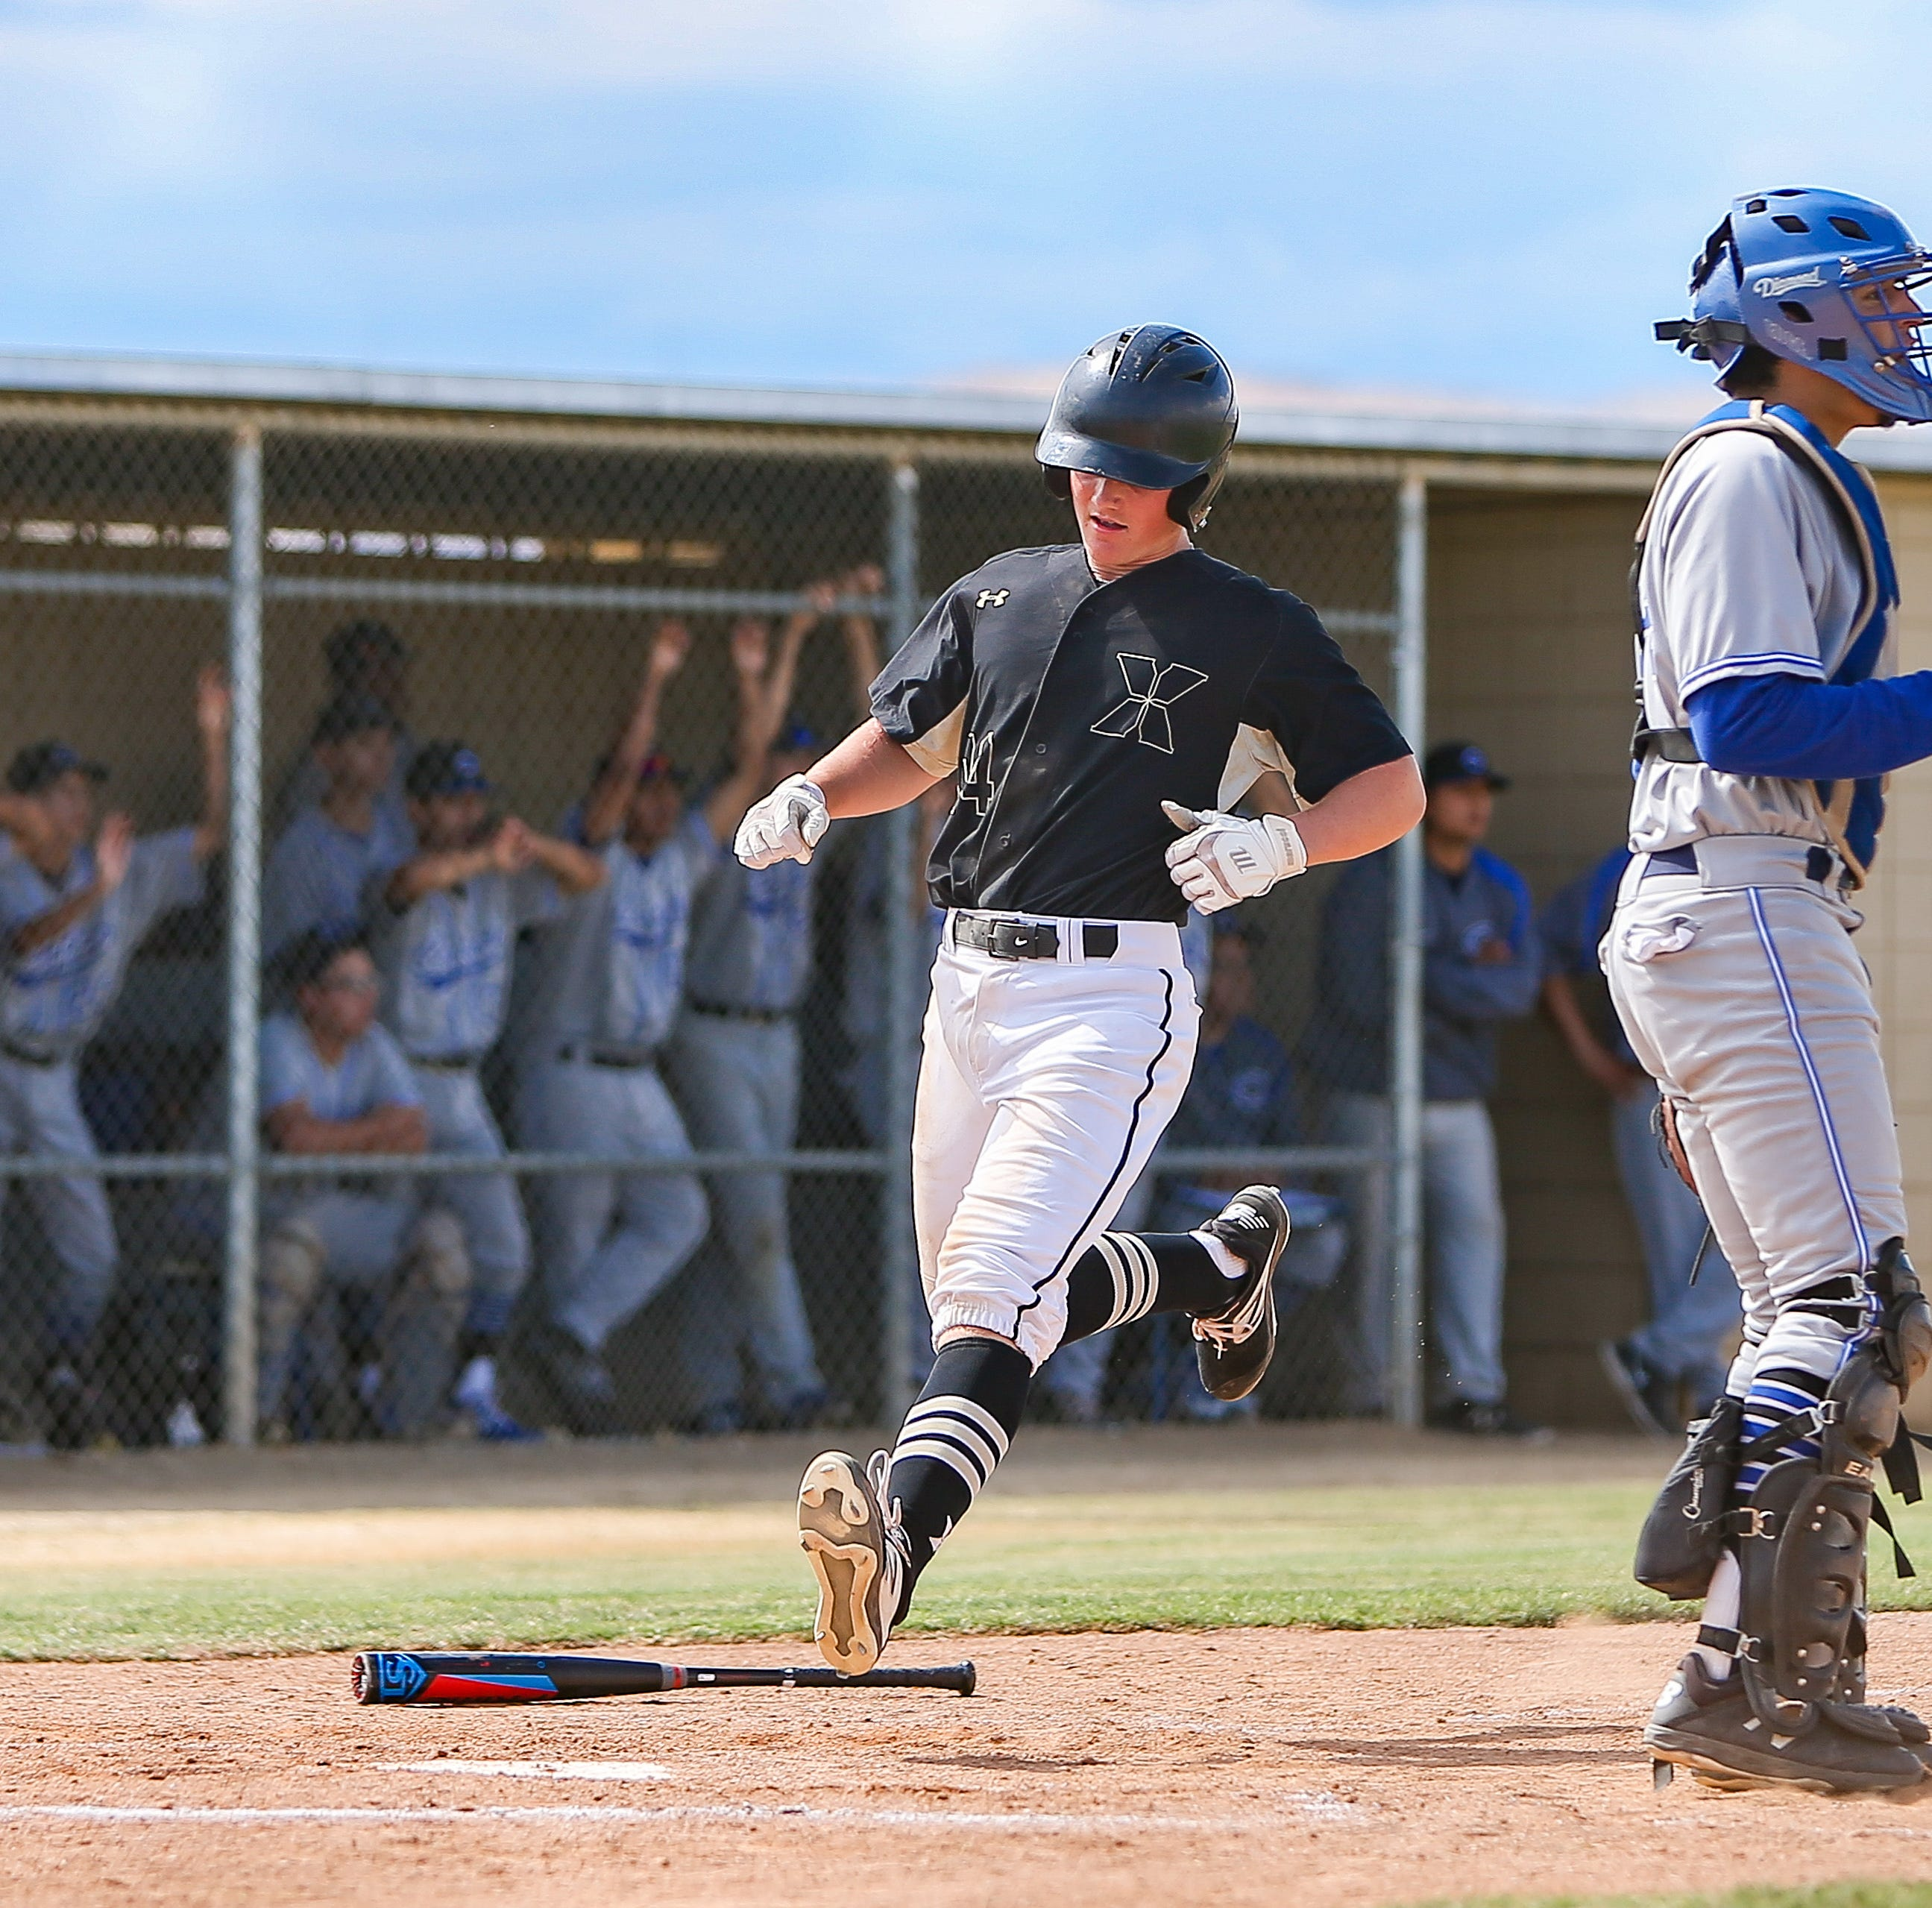 Saints still having fun! Xavier Prep baseball hangs on for tense quarterfinal victory